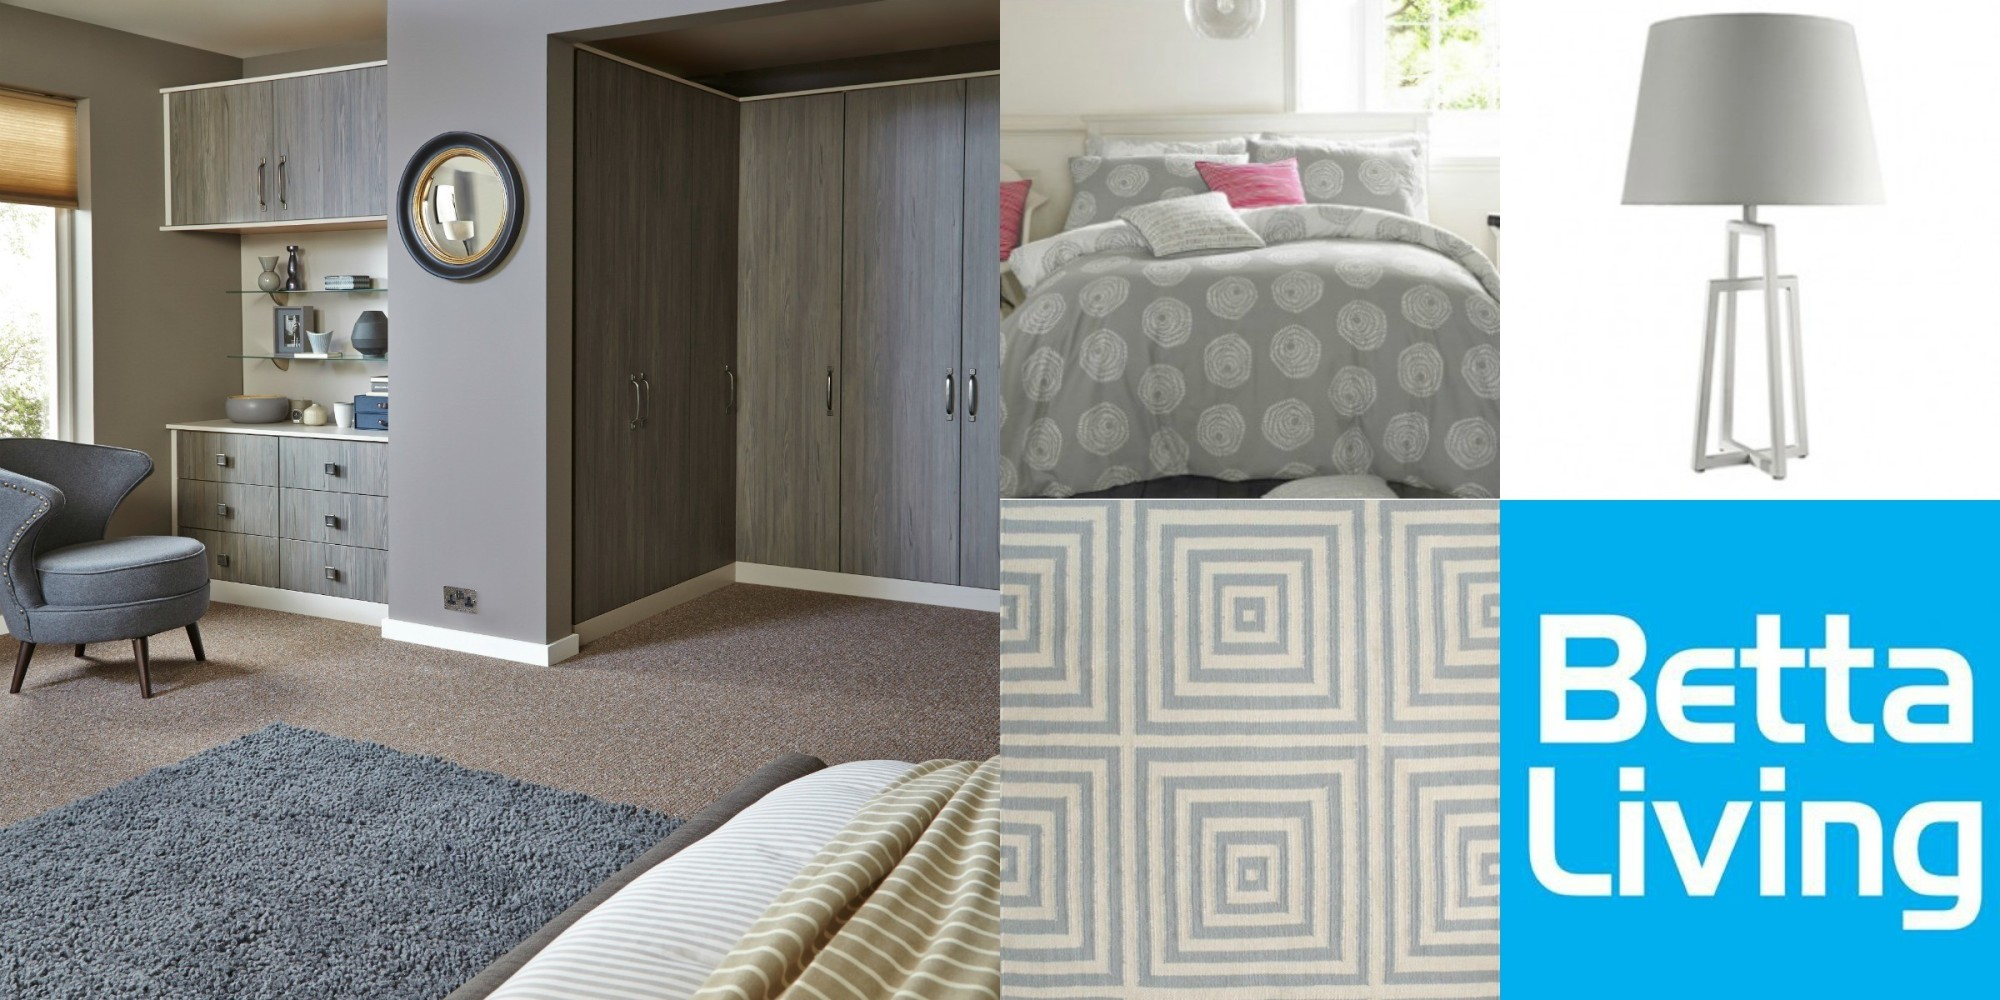 Competition Win A Bedroom Accessory Bundle Worth £300